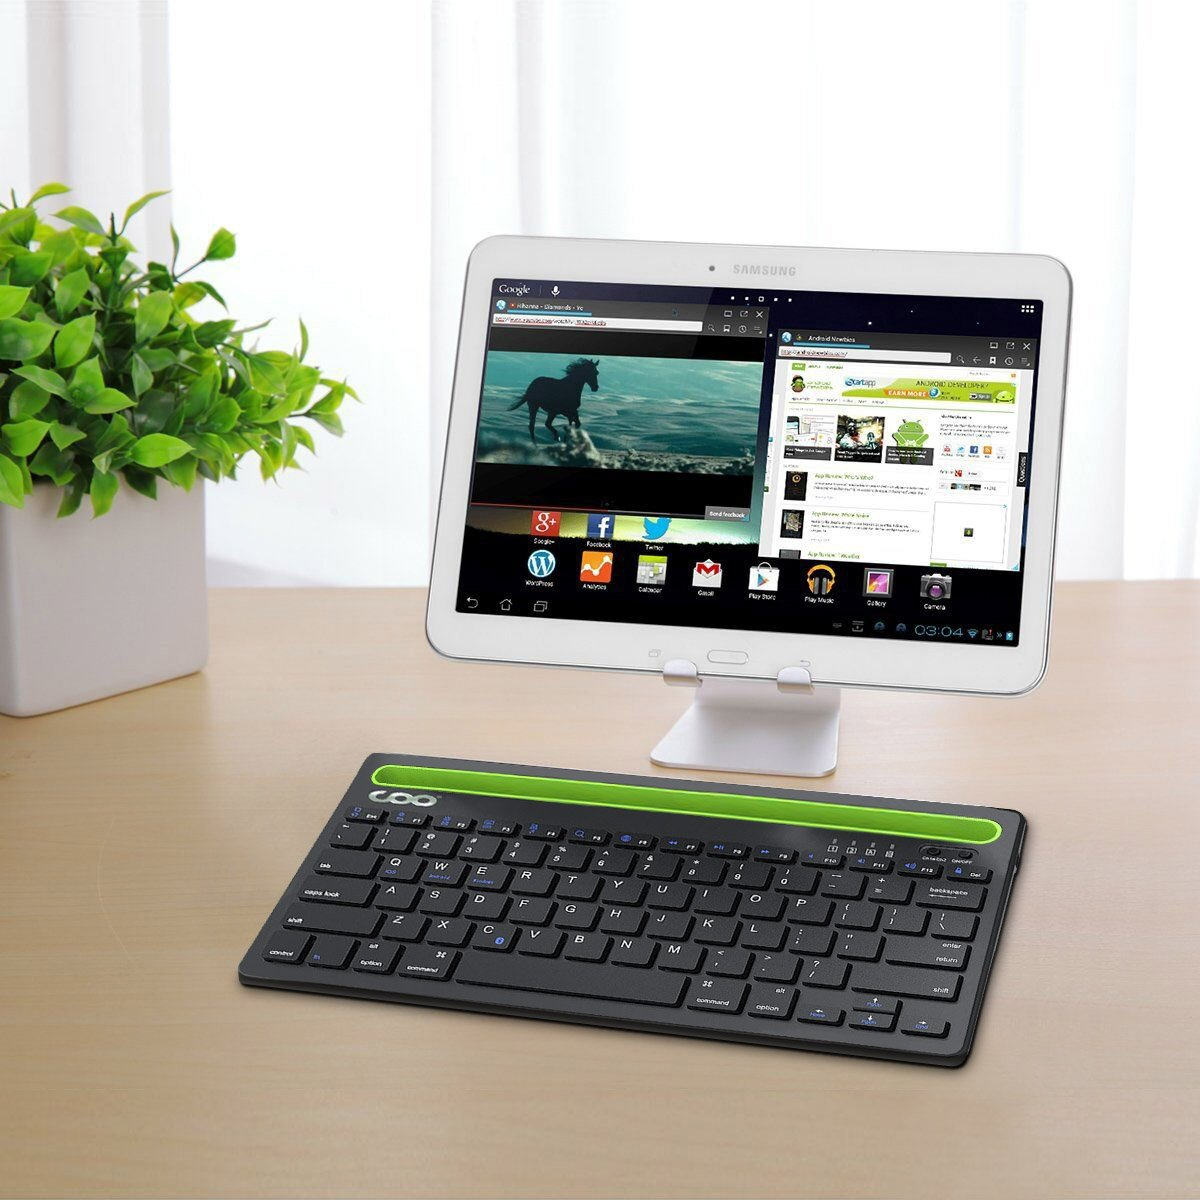 Bluetooth keyboard, Dual Channel Multi-device Universal Wireless Bluetooth Rechargeable Keyboard with Sturdy Stand for Tablet Smartphone PC Windows Android iOS Mac(Silver) by COO (Image #2)